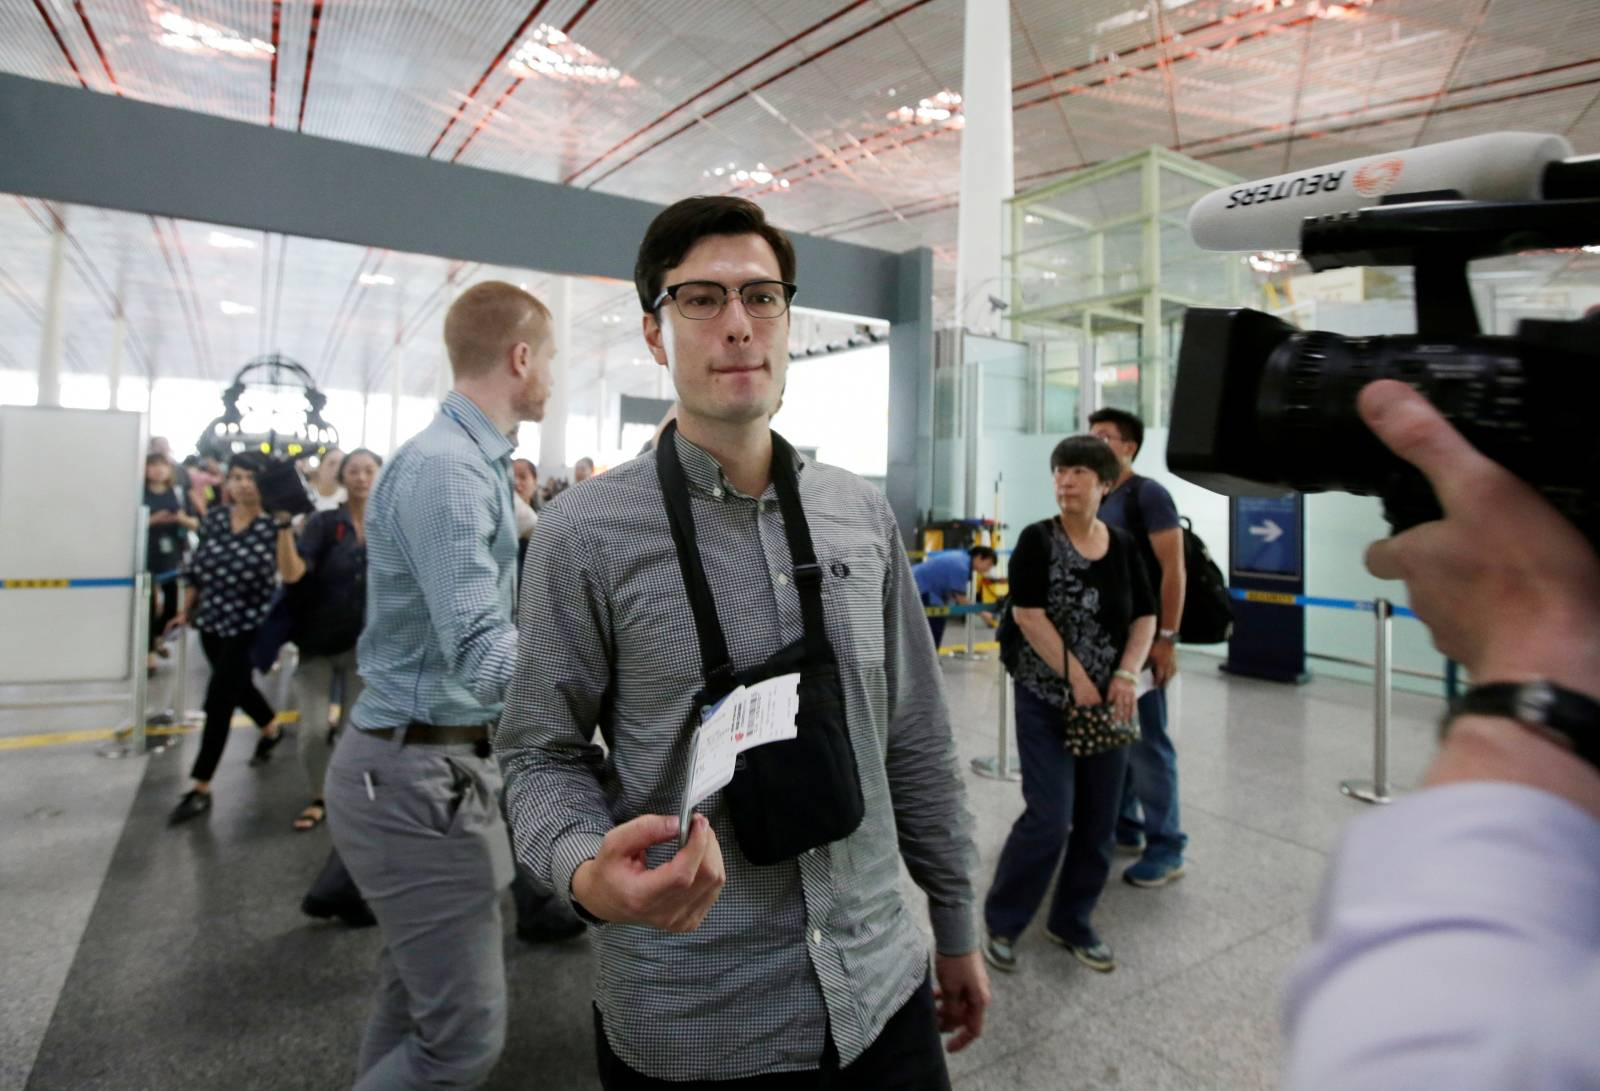 An Australian student Alek Sigley, 29, who was detained in North Korea, looks at the media member as he departs from Beijing to Japan, at the Beijing international airport